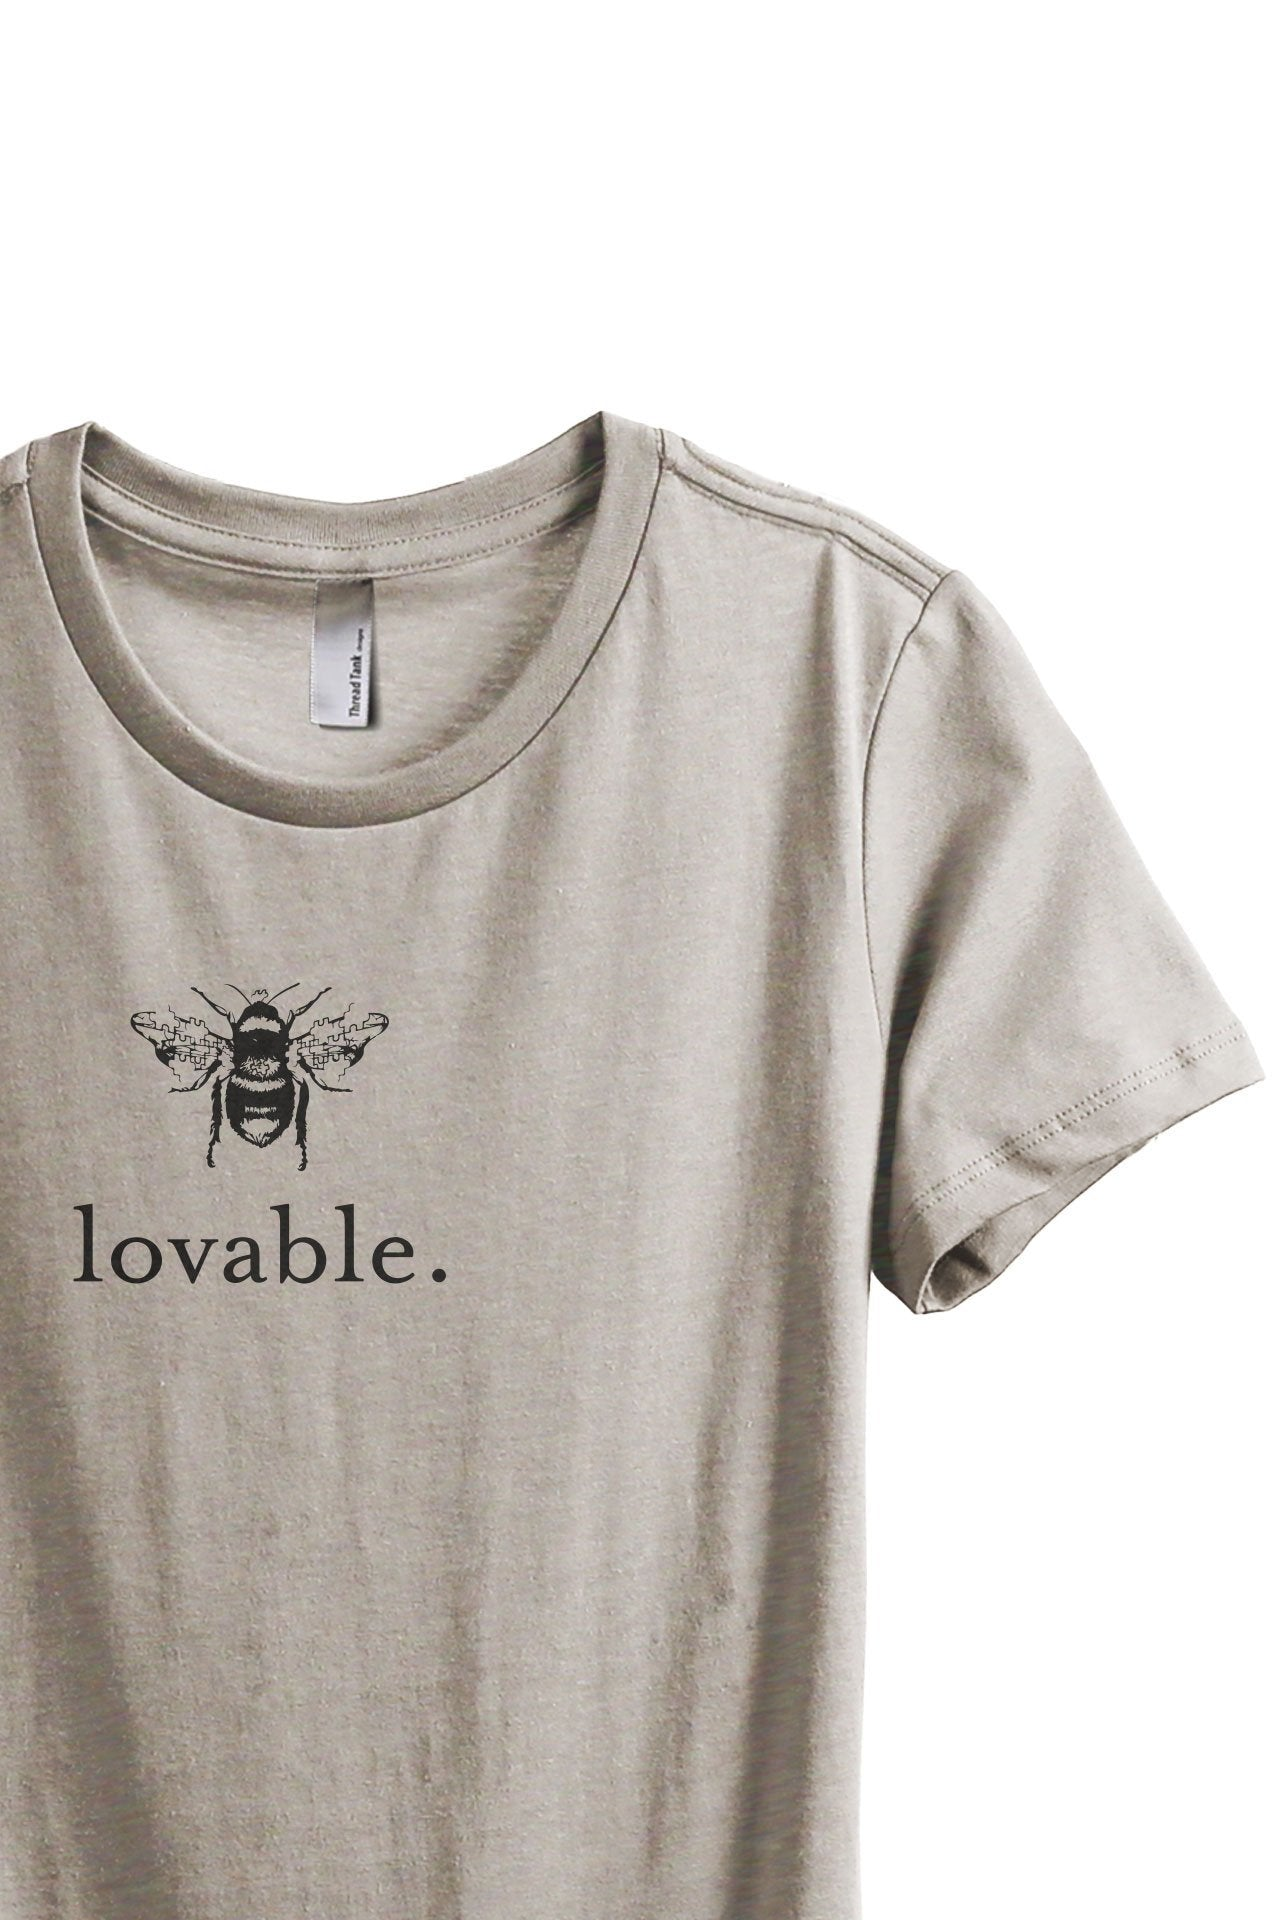 Bee Lovable Women's Relaxed Crewneck T-Shirt Top Tee Charcoal Grey